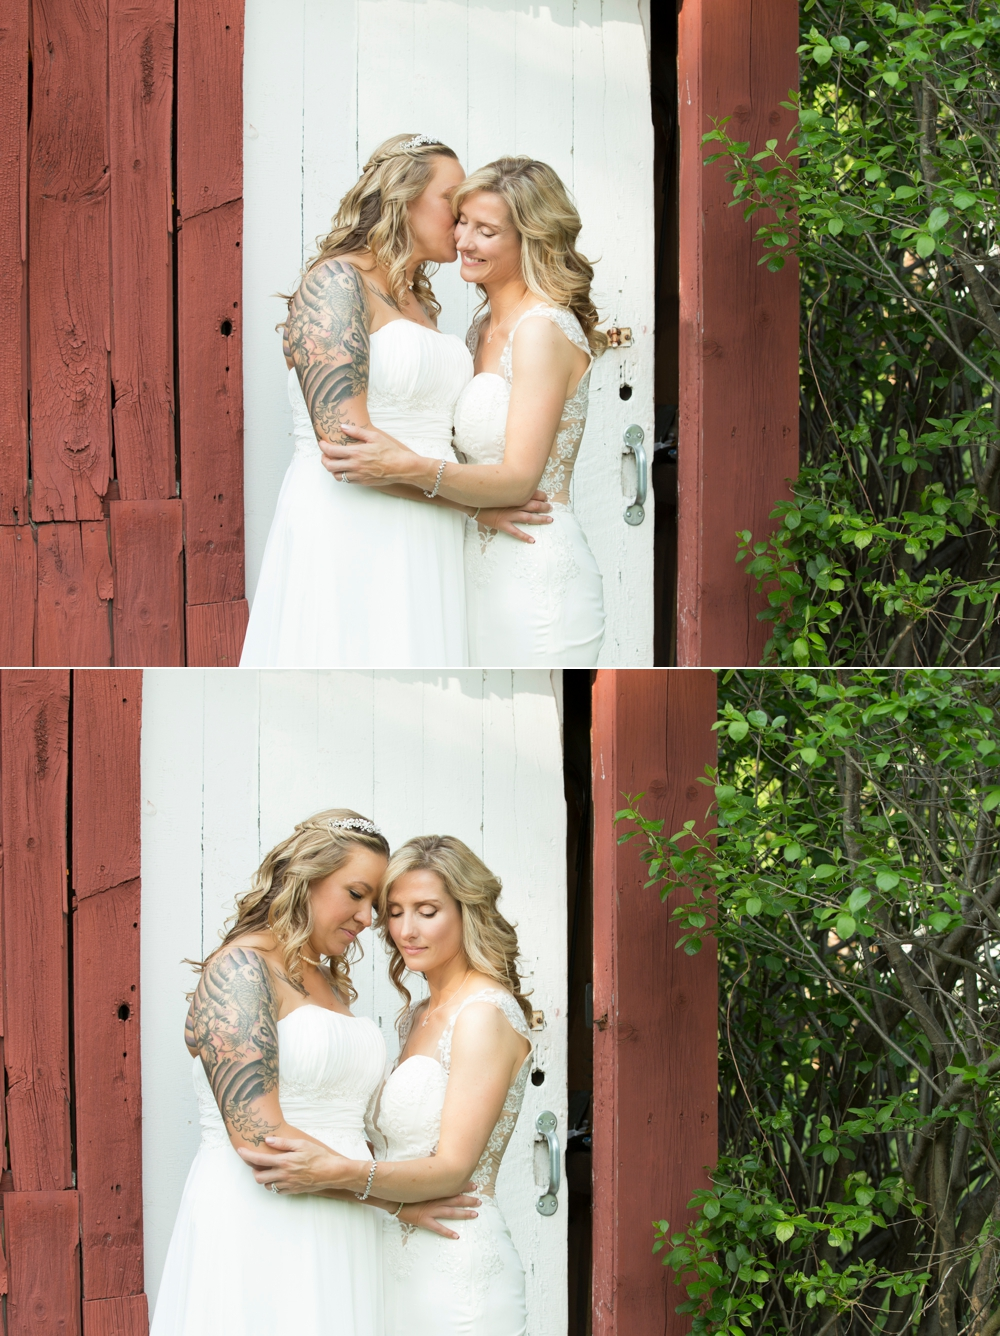 FairbanksFarm_Wedding_Jill&Lori_0021.jpg